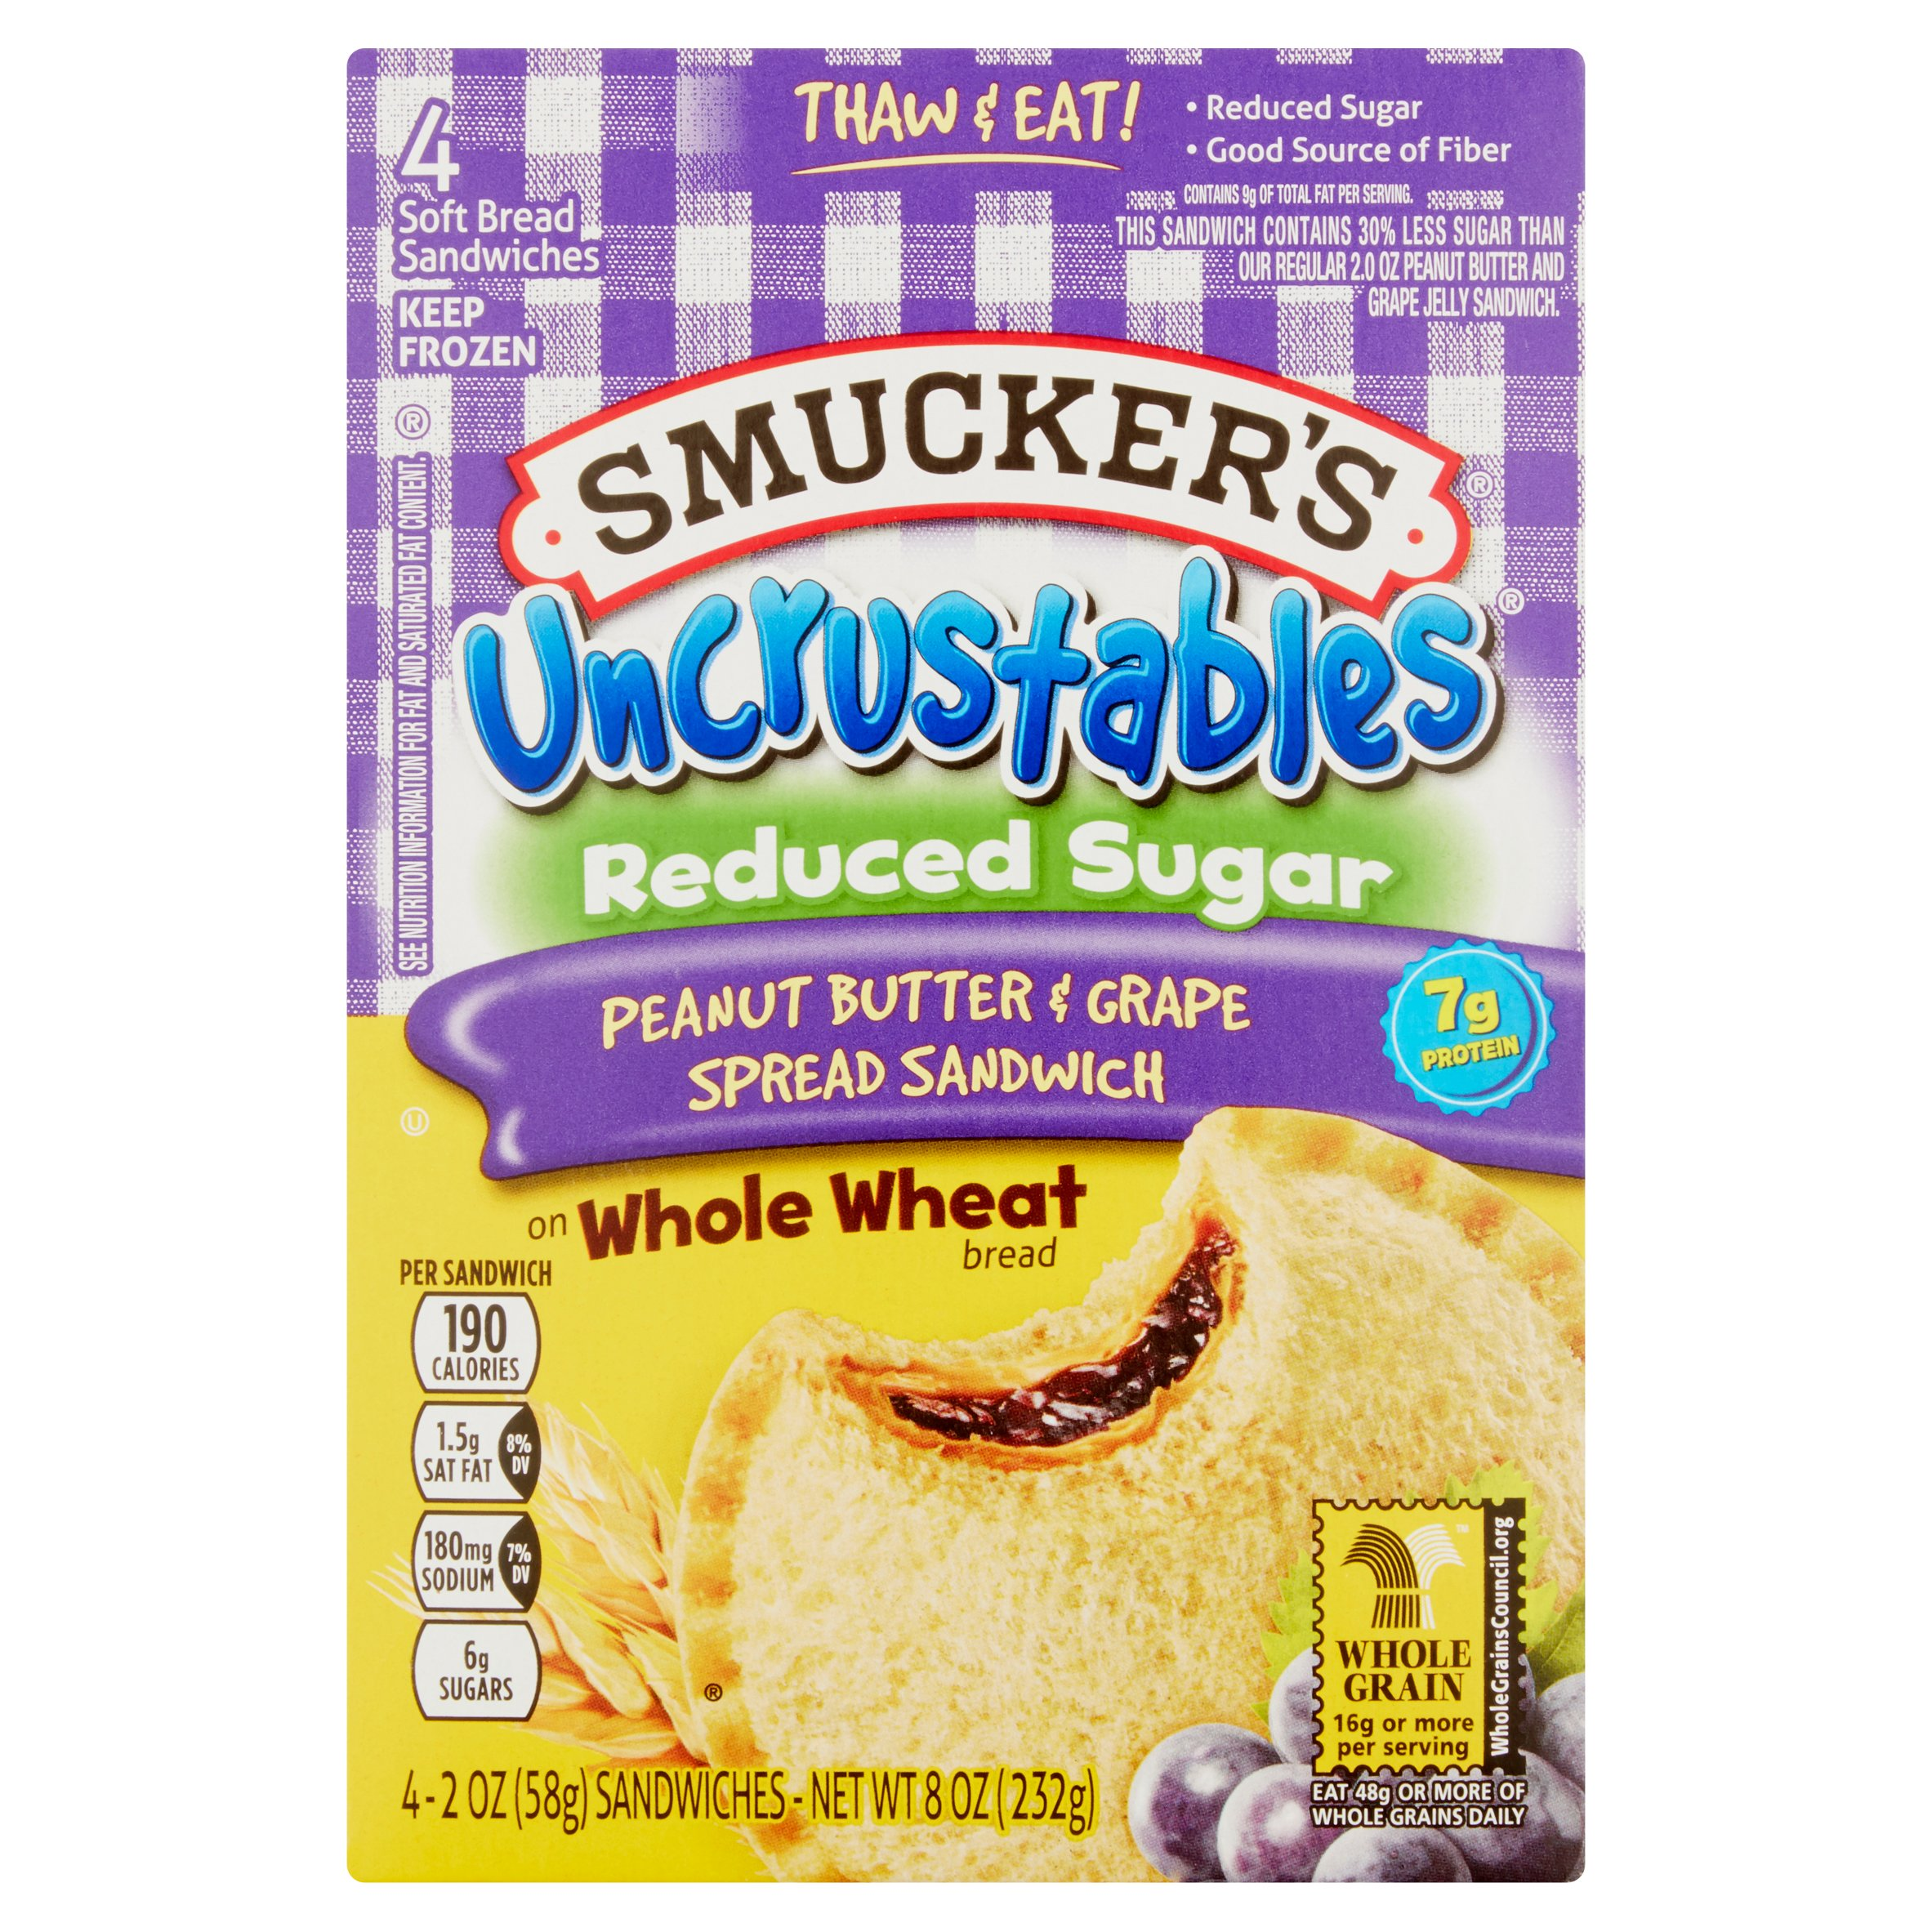 Smucker's Uncrustables Reduced Sugar Peanut Butter & Grape Spread Sandwich, 2 oz, 4 count